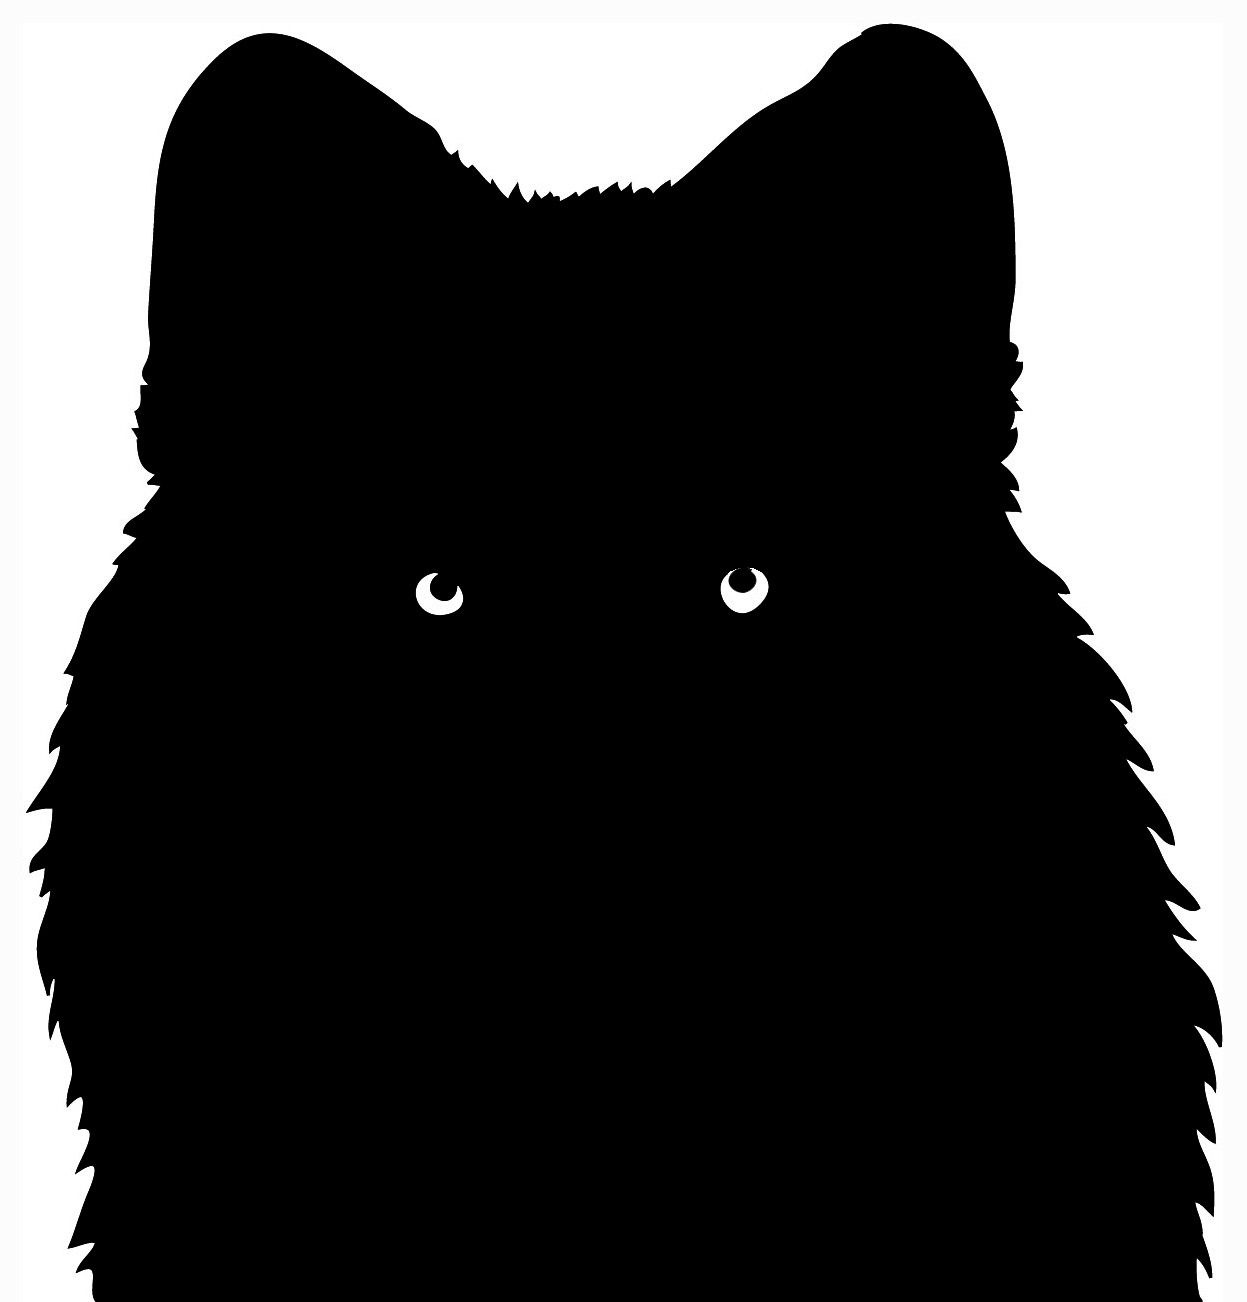 Wolf Silhouette Clipart Best Wolf Silhouette Silhouette Clip Art Animal Silhouette